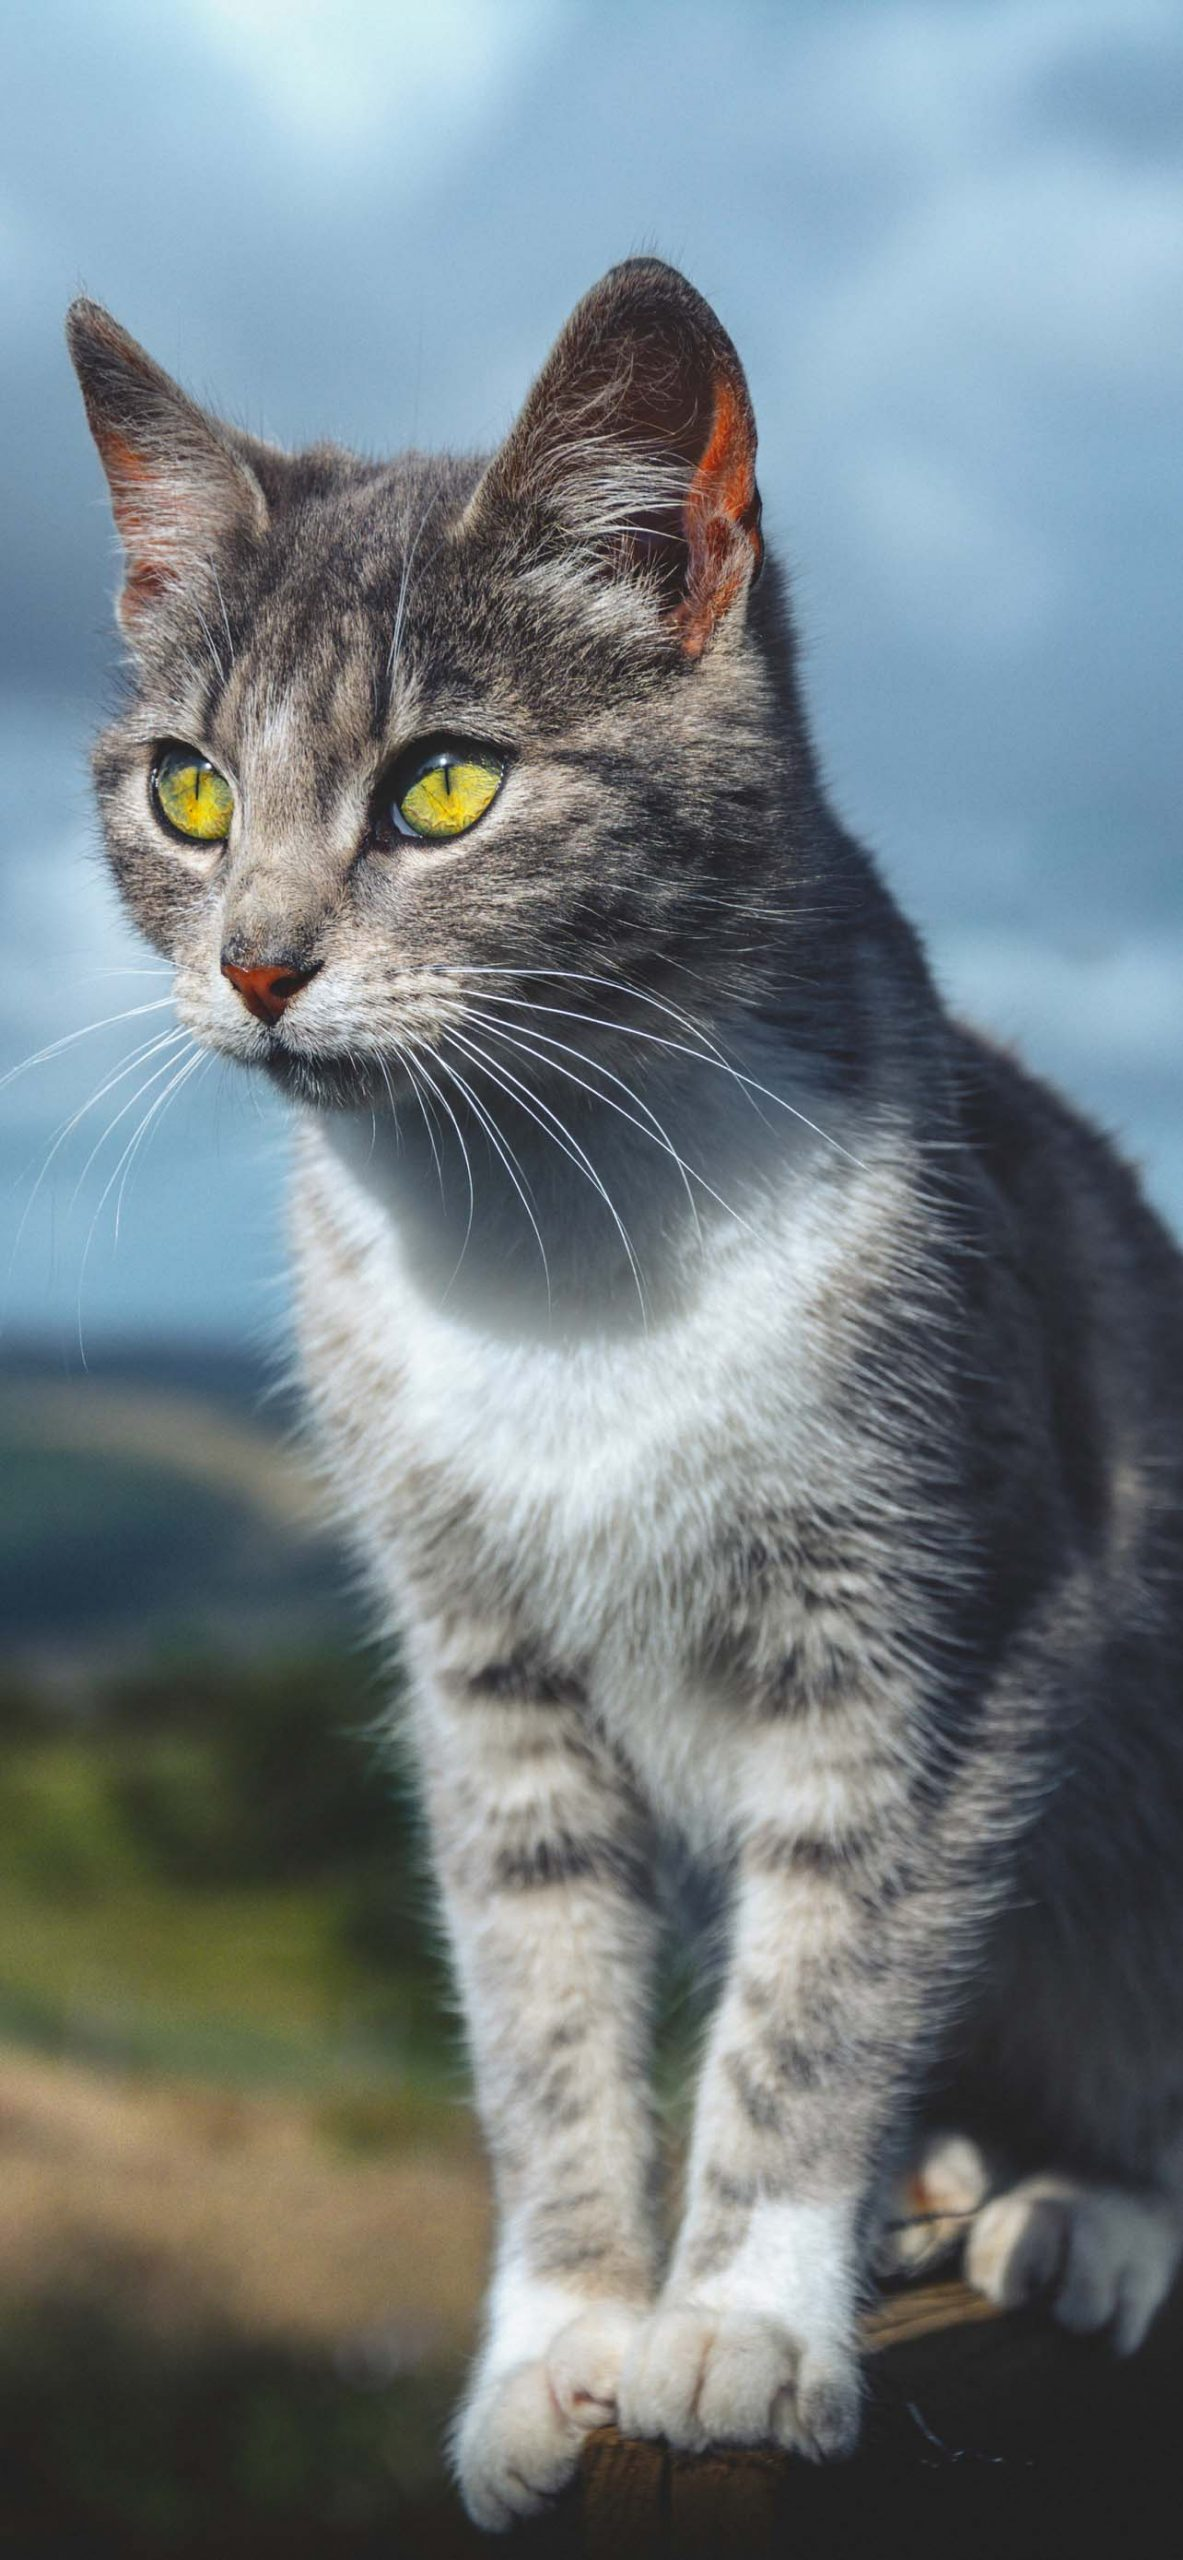 Beautiful Cat with Yellow Eyes Portrait